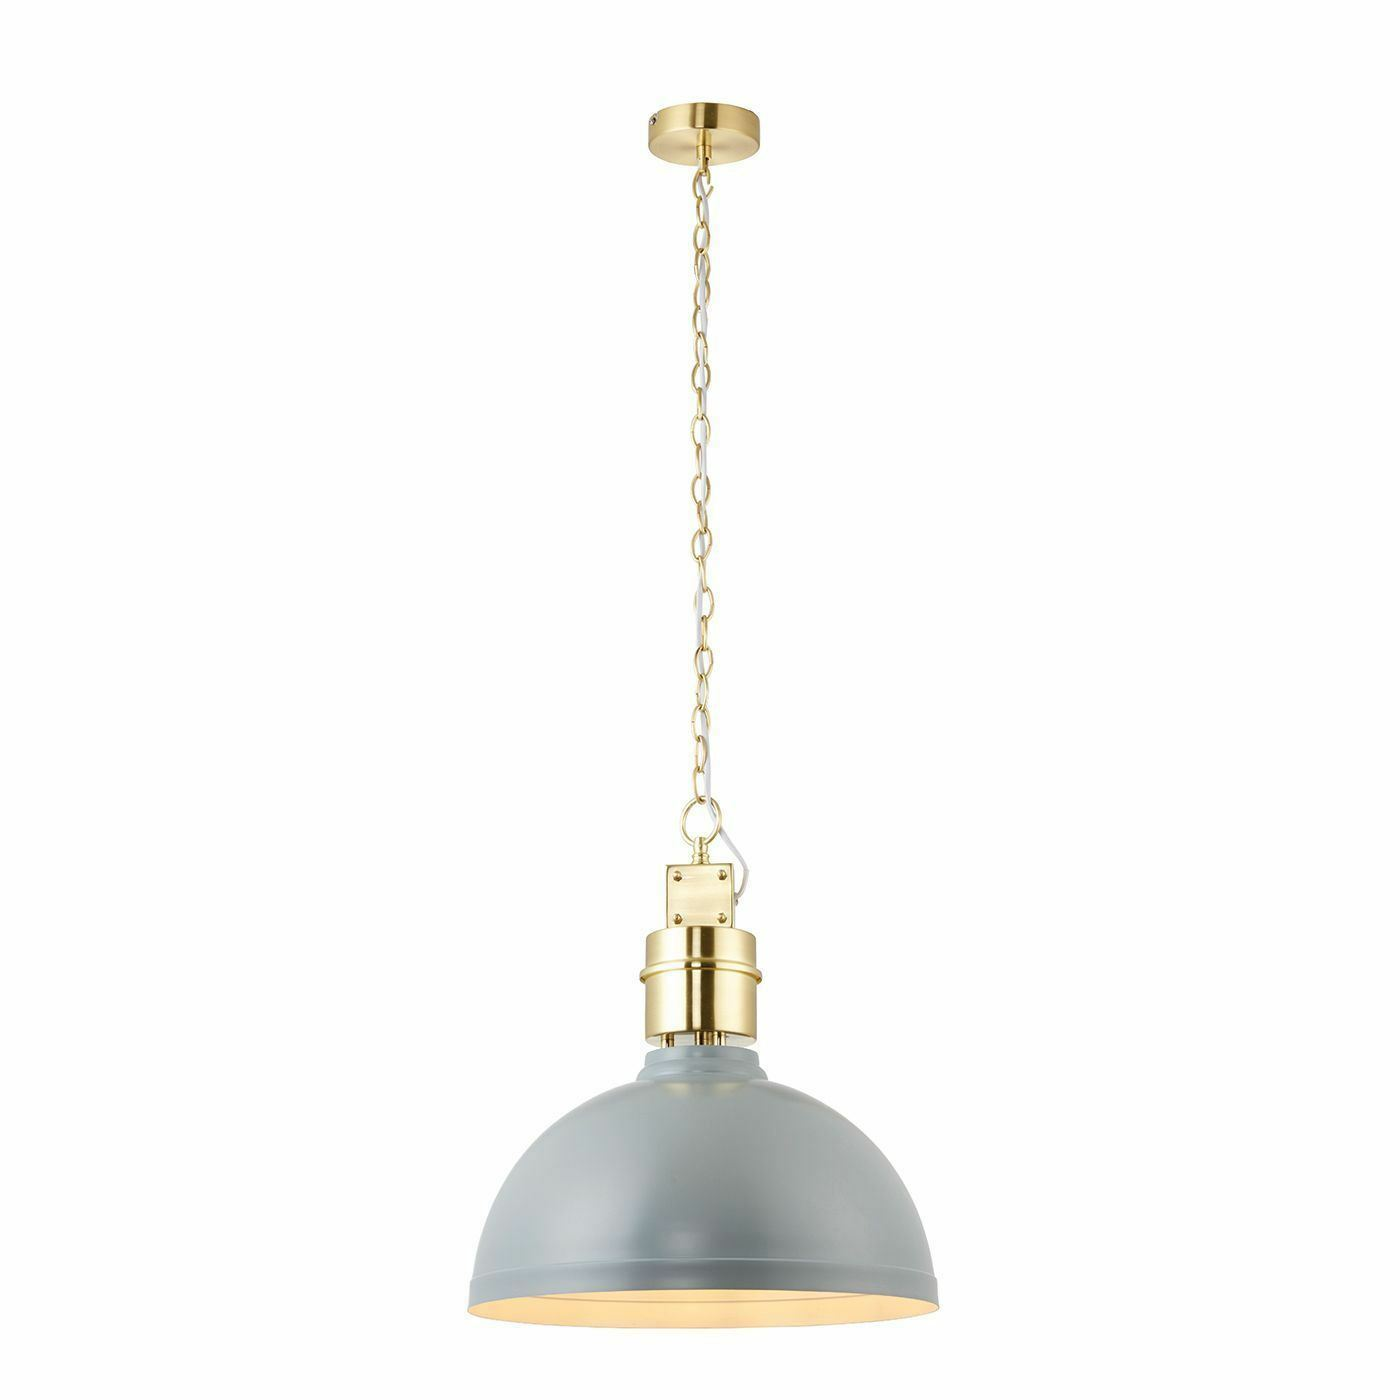 Endon Lighting Collingham 1lt Pendentif 40 40 Pendentif W-Satin 67557 0fe30b